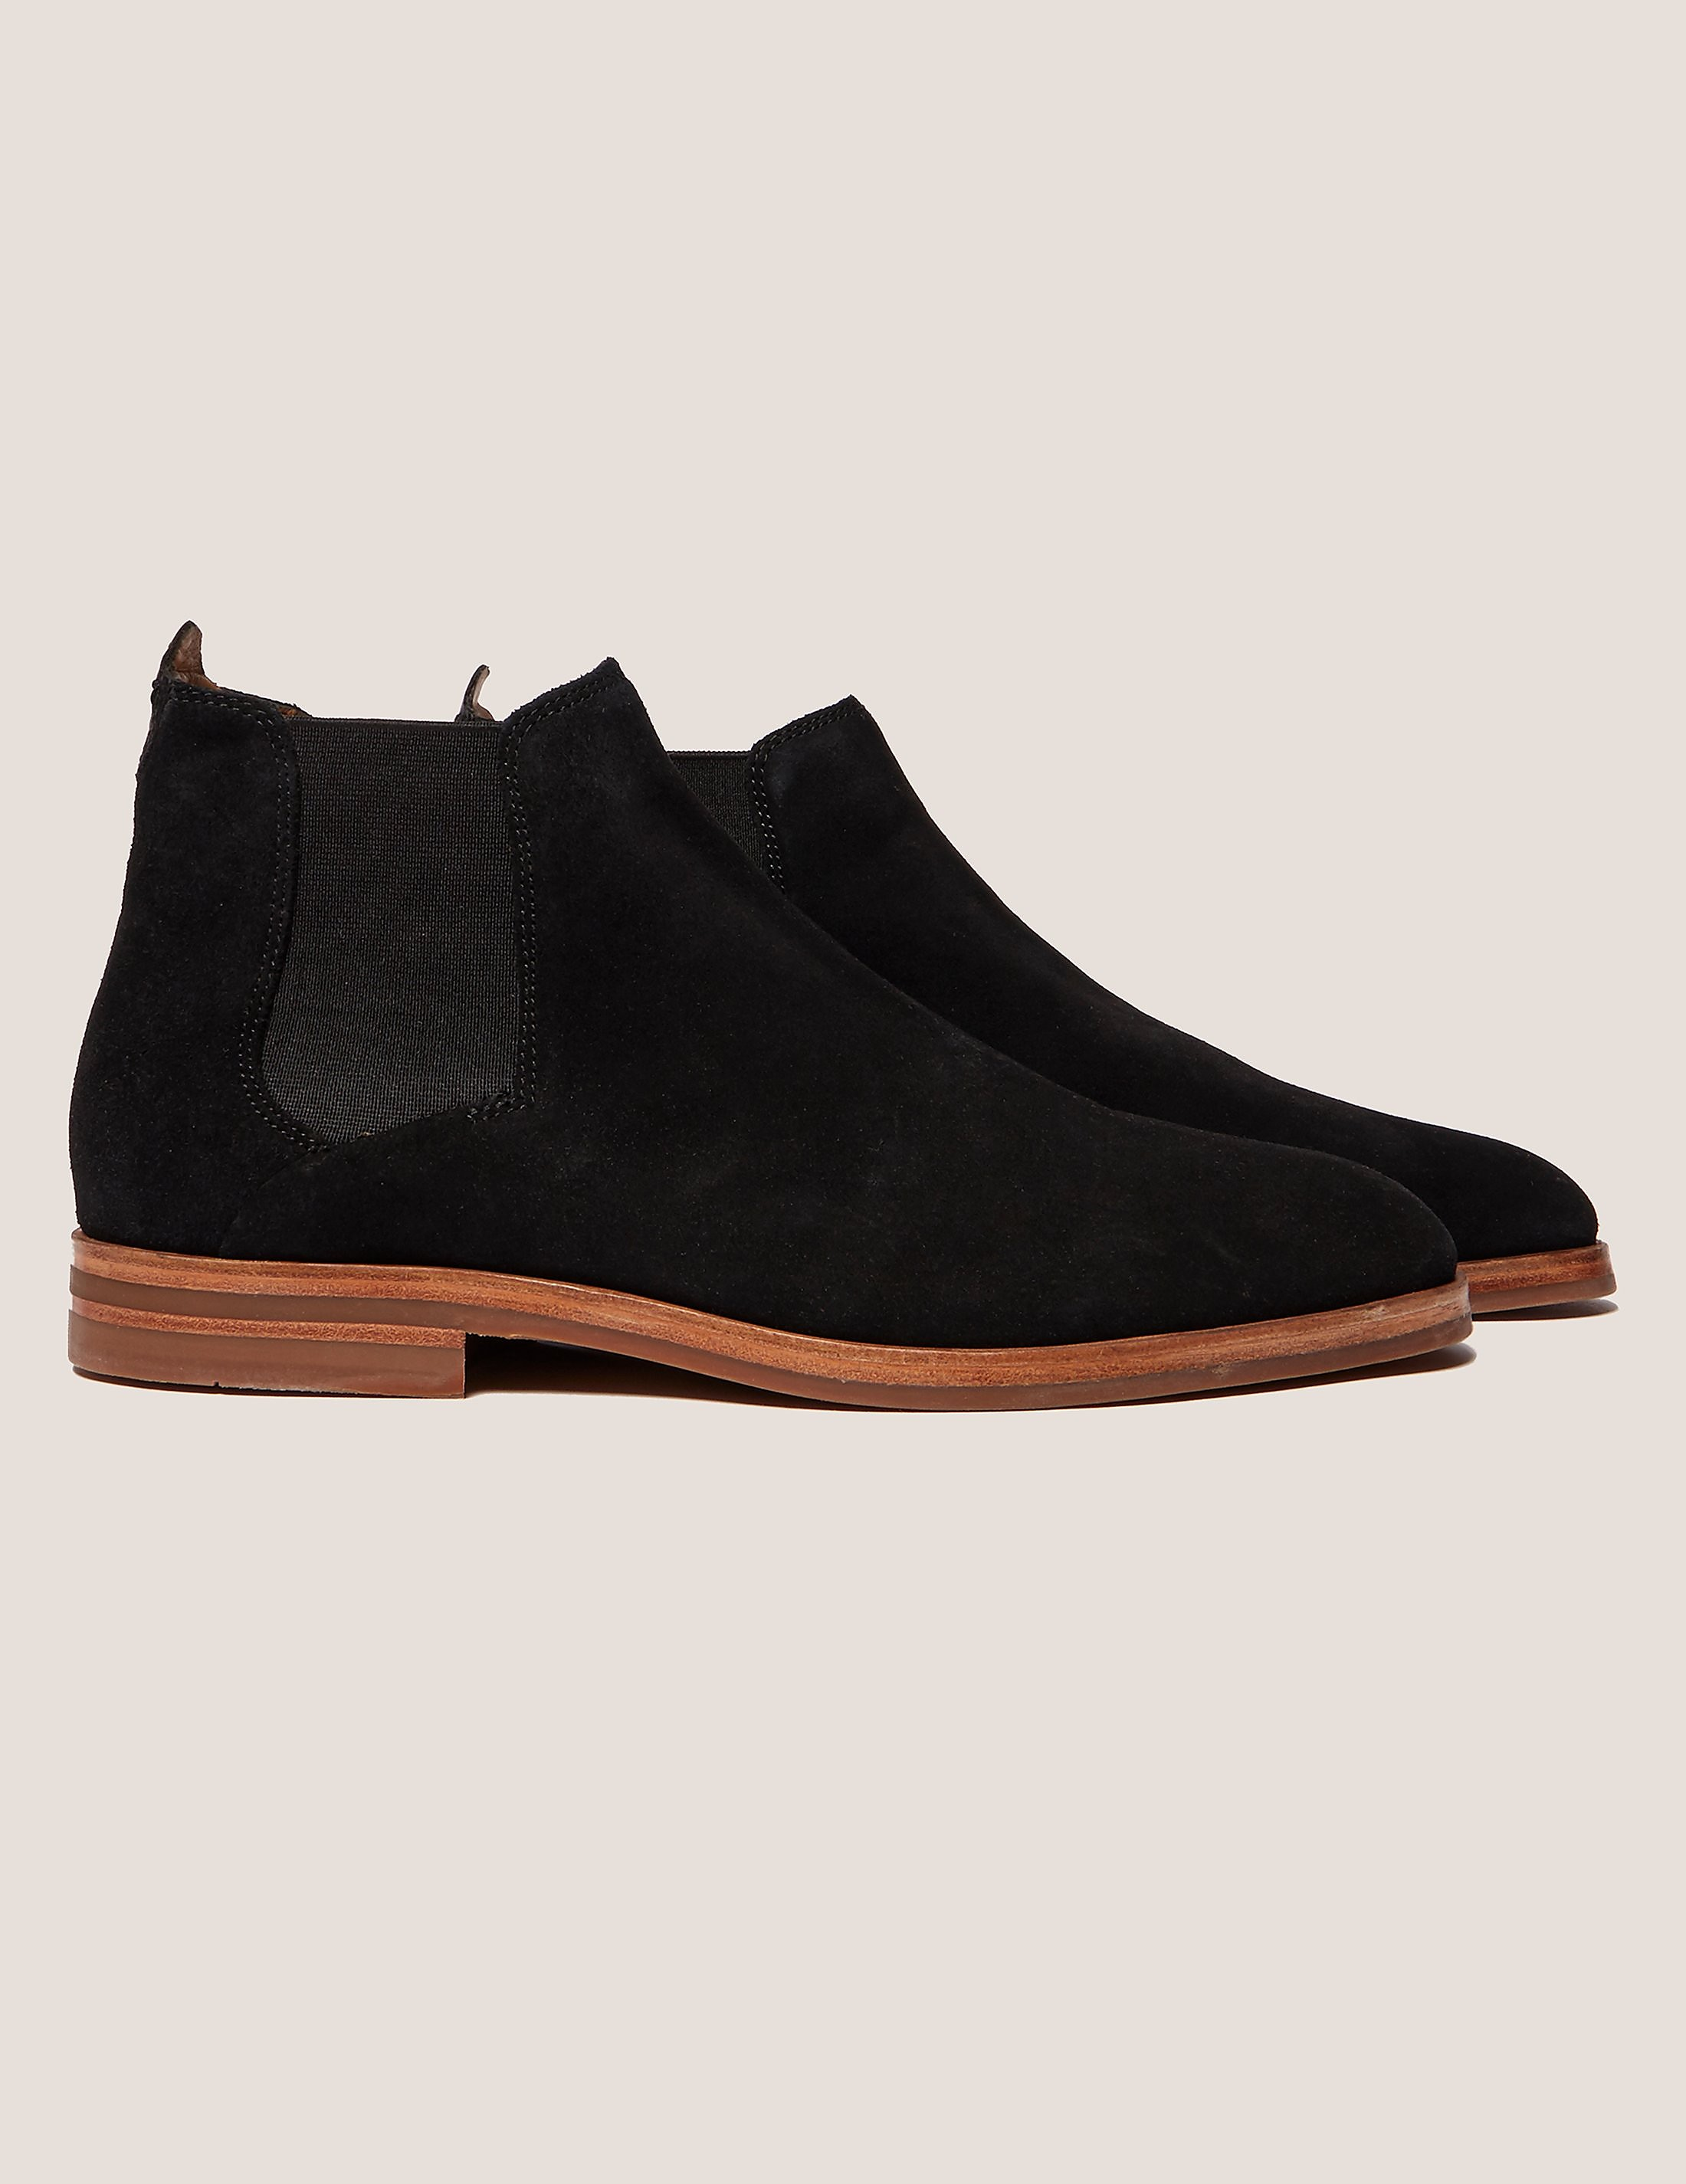 H by Hudson Tonti Boots